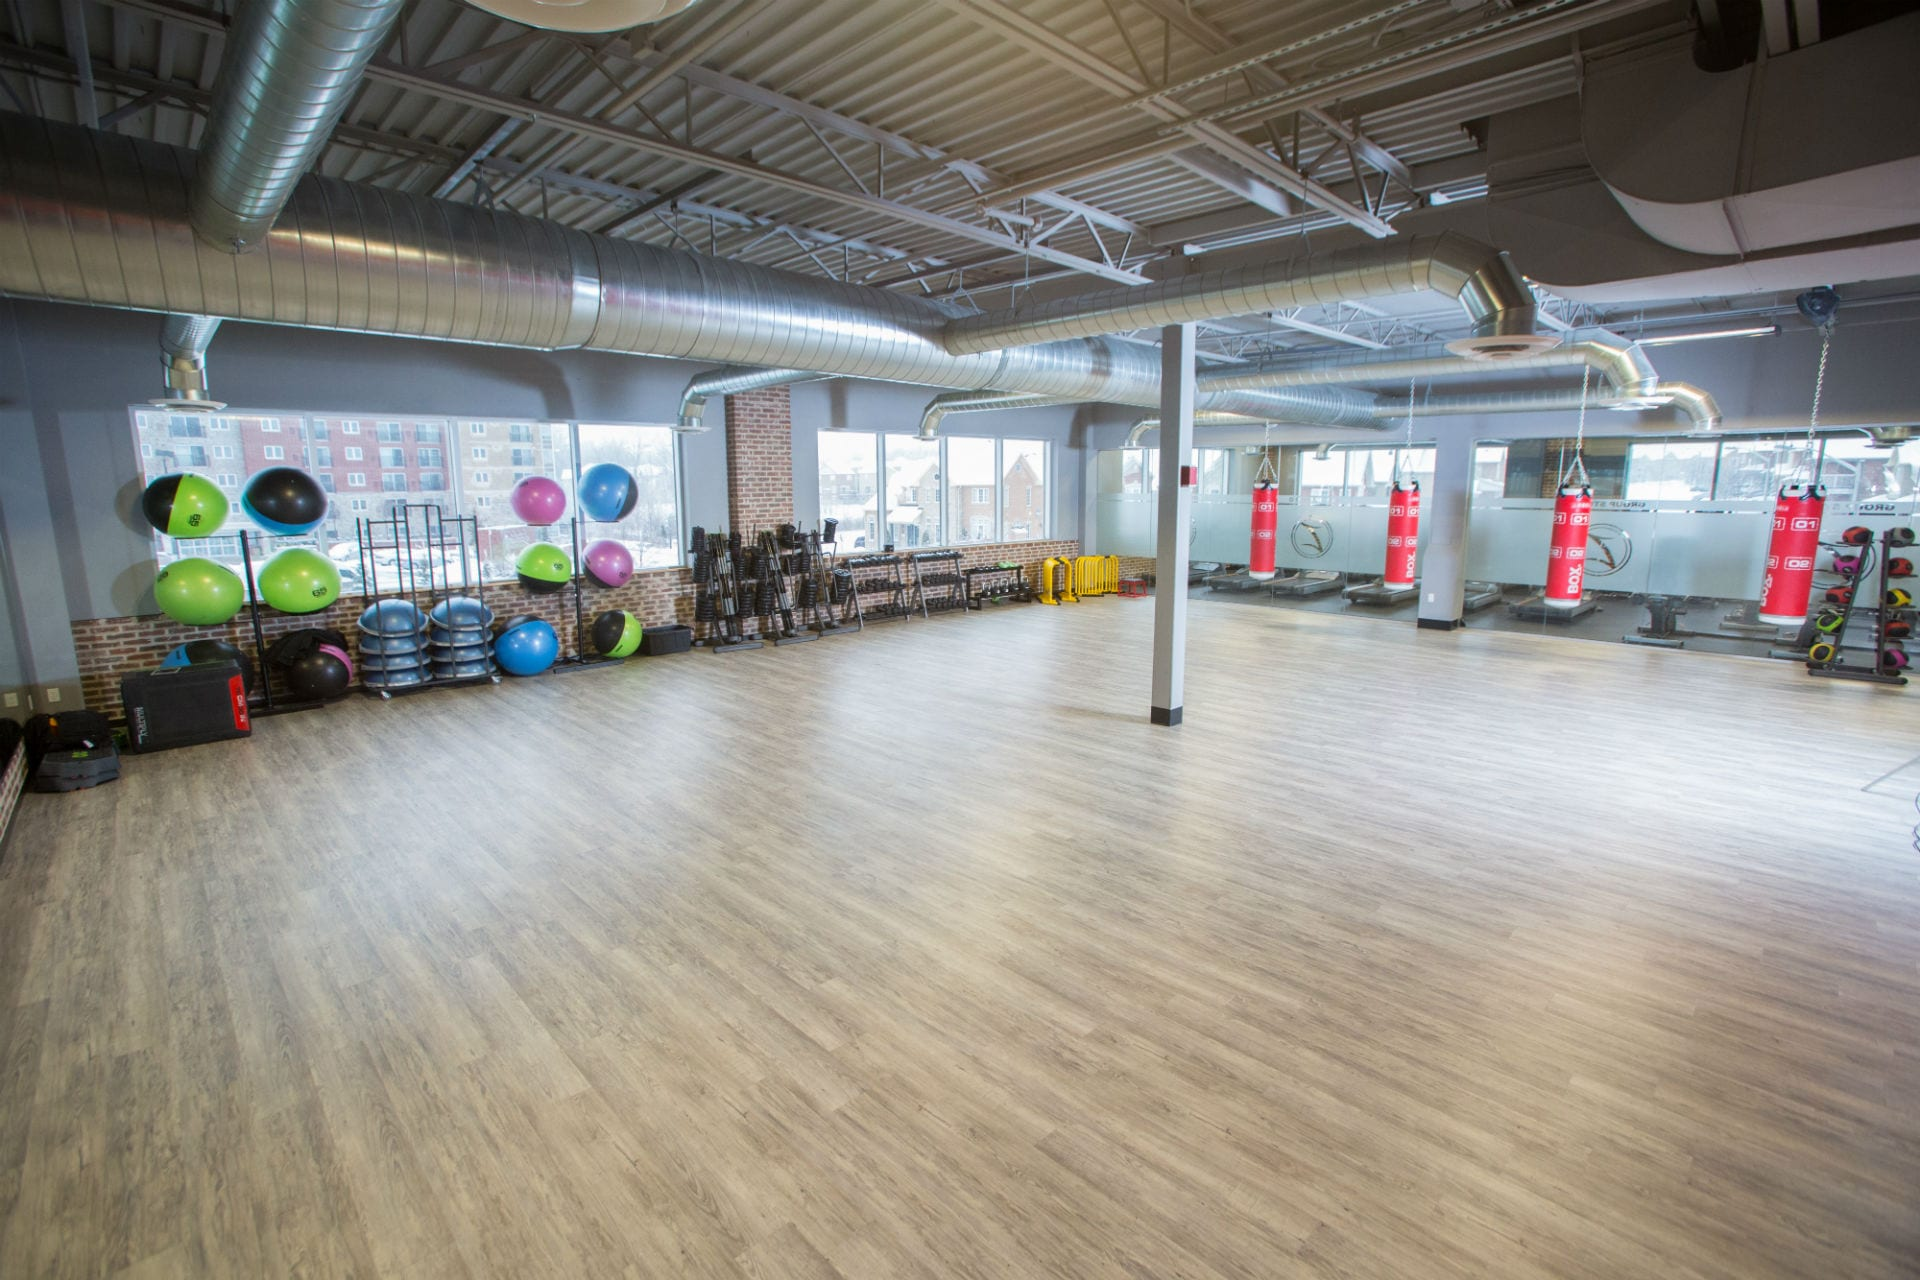 industrial modern gym studio with fitness equipment